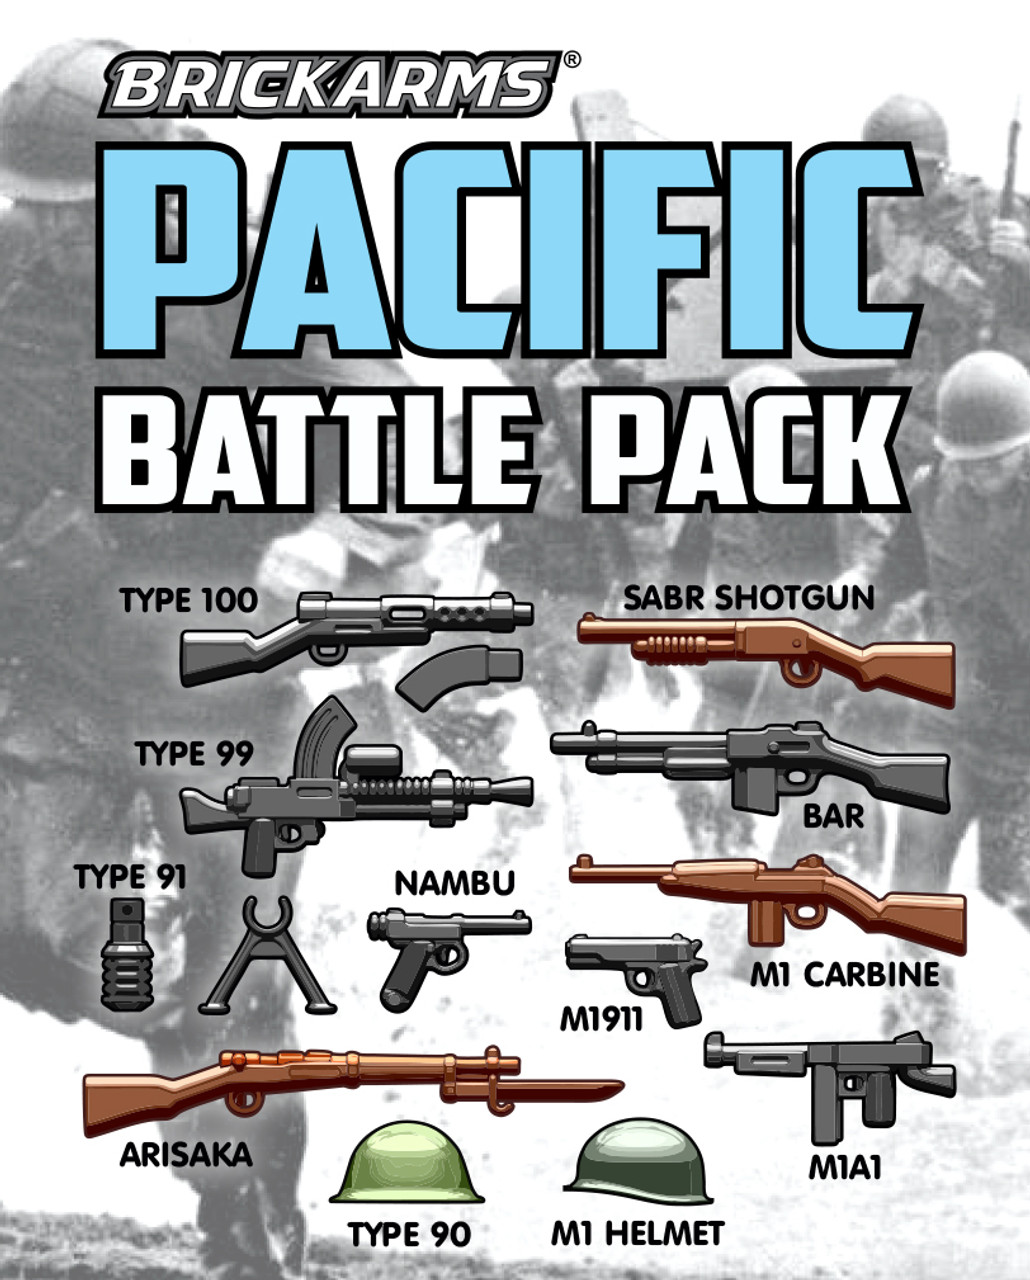 BrickArms Pacific Battle Pack for World War 2 designed for LEGO Minifigure